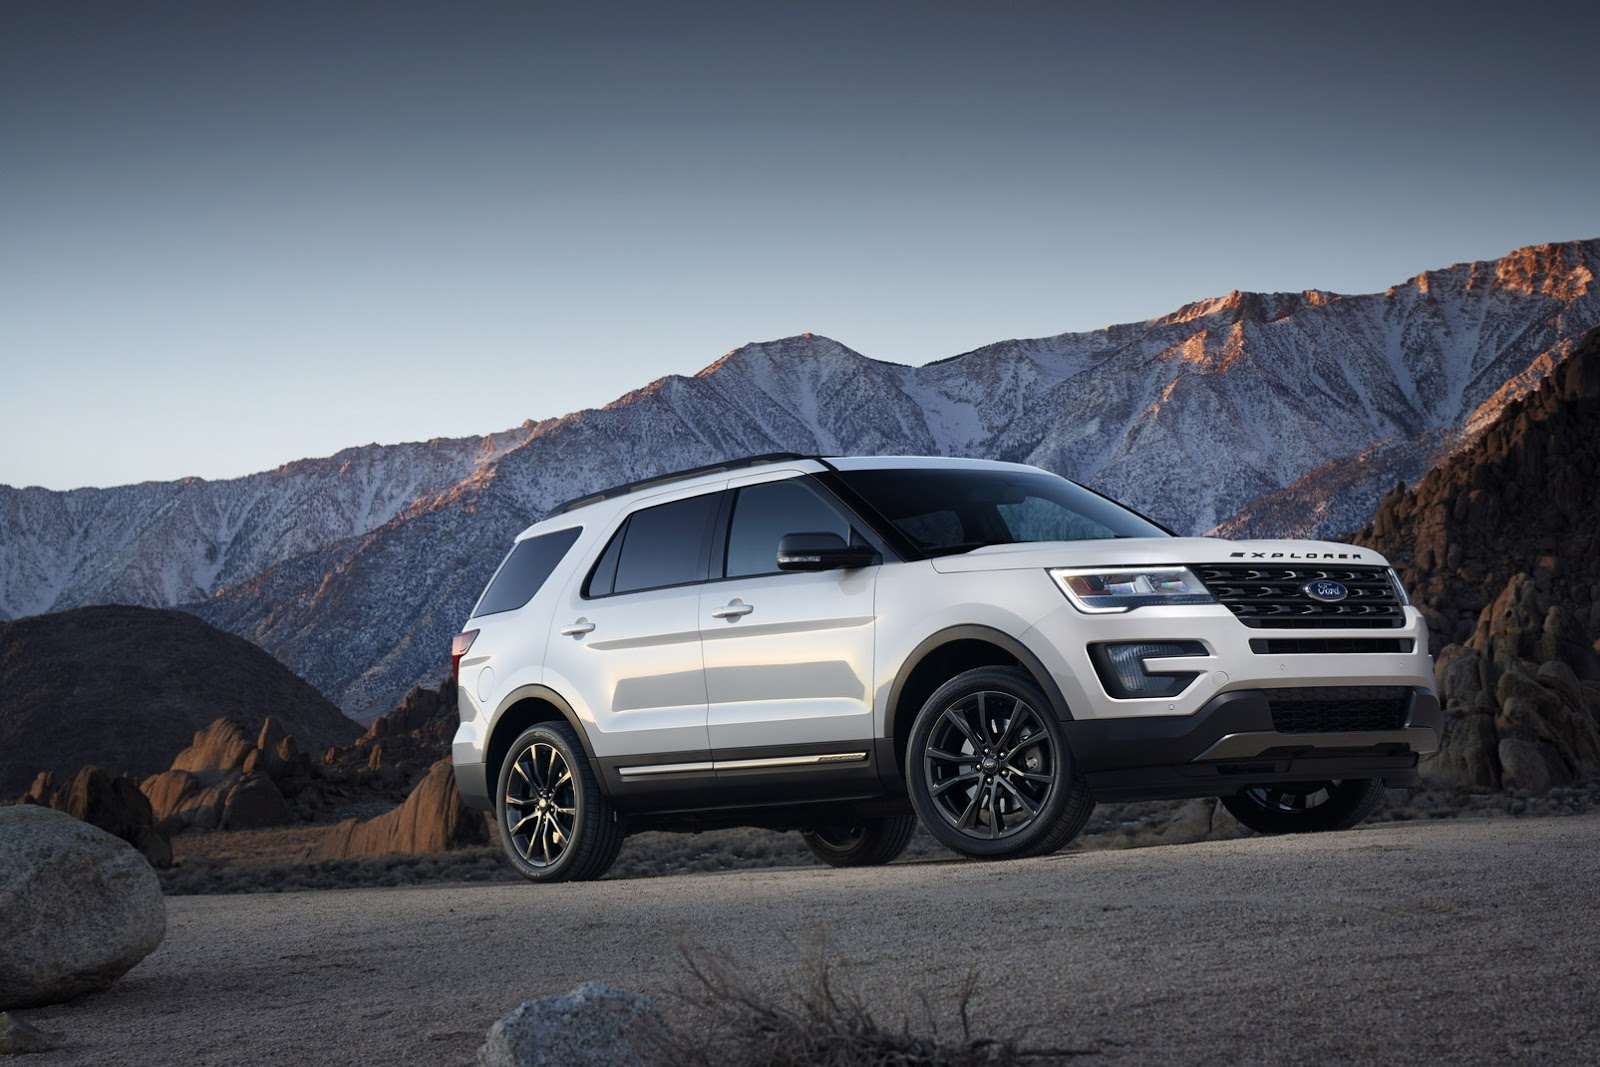 ford-recalls-850,000-utility-vehicles,-pickup-trucks-over-three-issues